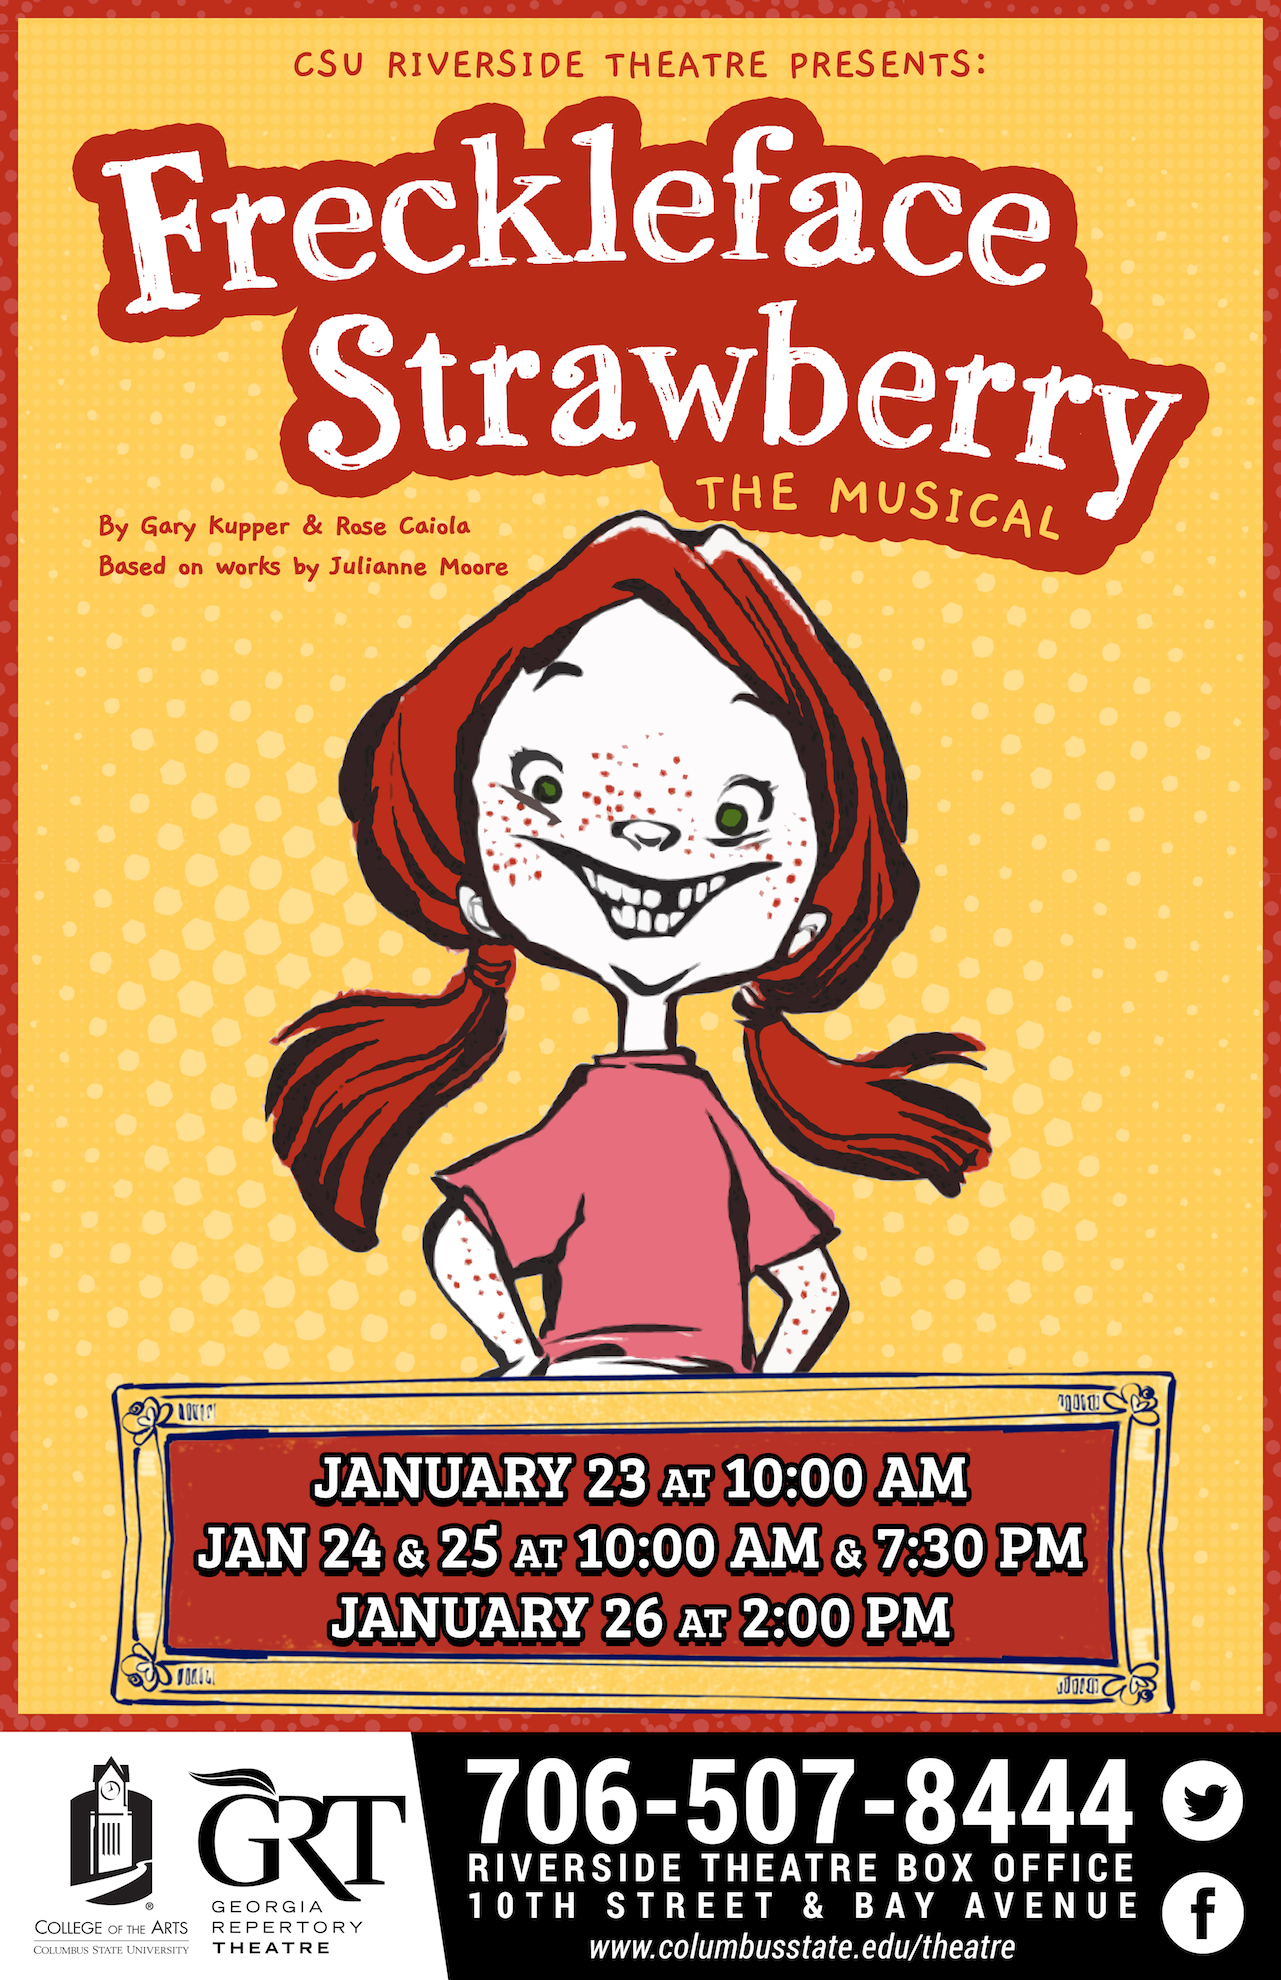 CSU Theatre: Freckleface Strawberry